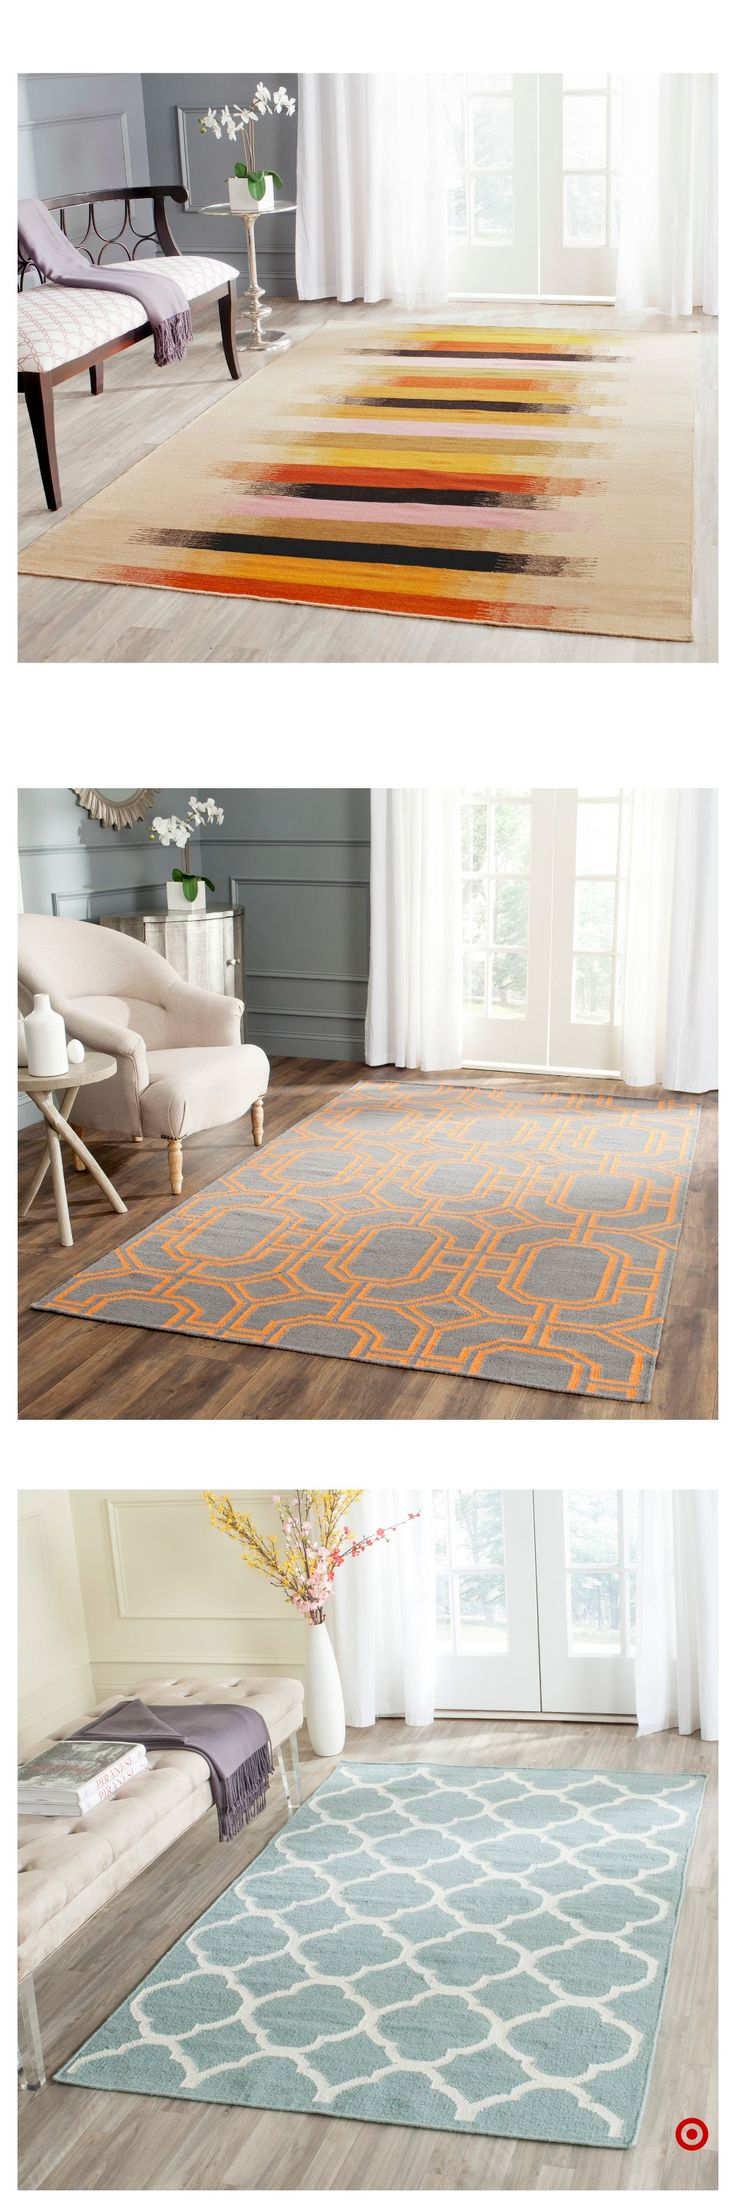 22 best Rugs images on Pinterest | Ivory, Shag rugs and Carpets